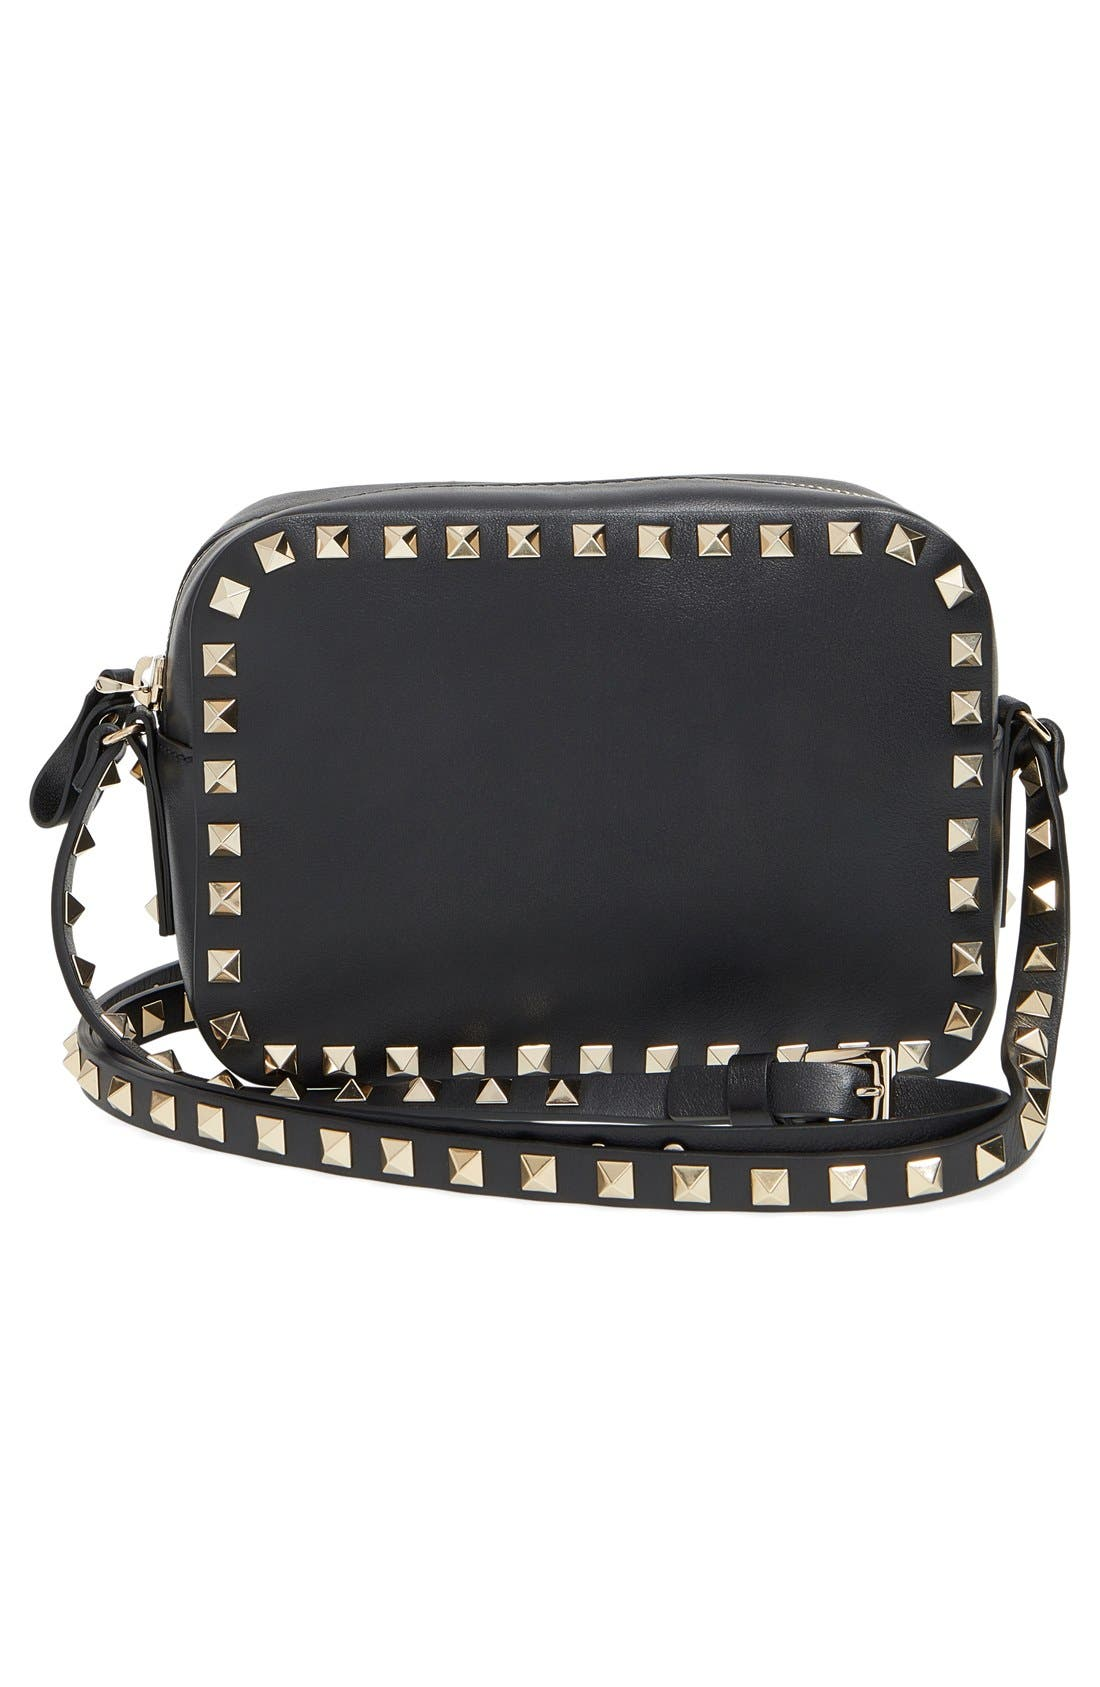 Alternate Image 1 Selected - VALENTINO GARAVANI 'Rockstud' Calfskin Leather Camera Crossbody Bag